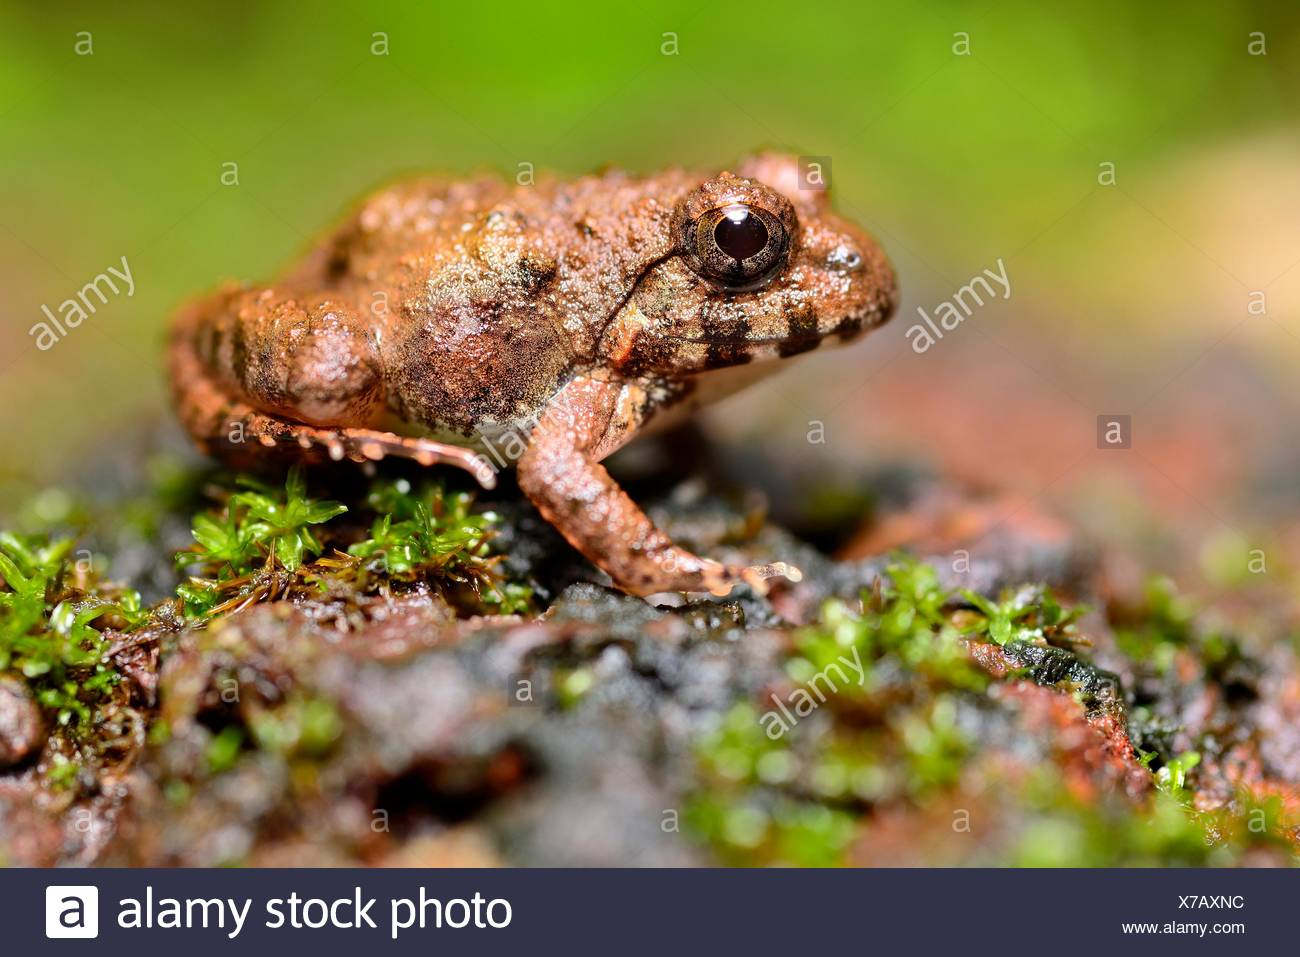 Indian burrowing frog (Sphaerotheca breviceps) in Cotigao sanctuary, Goa, India. - Stock Image